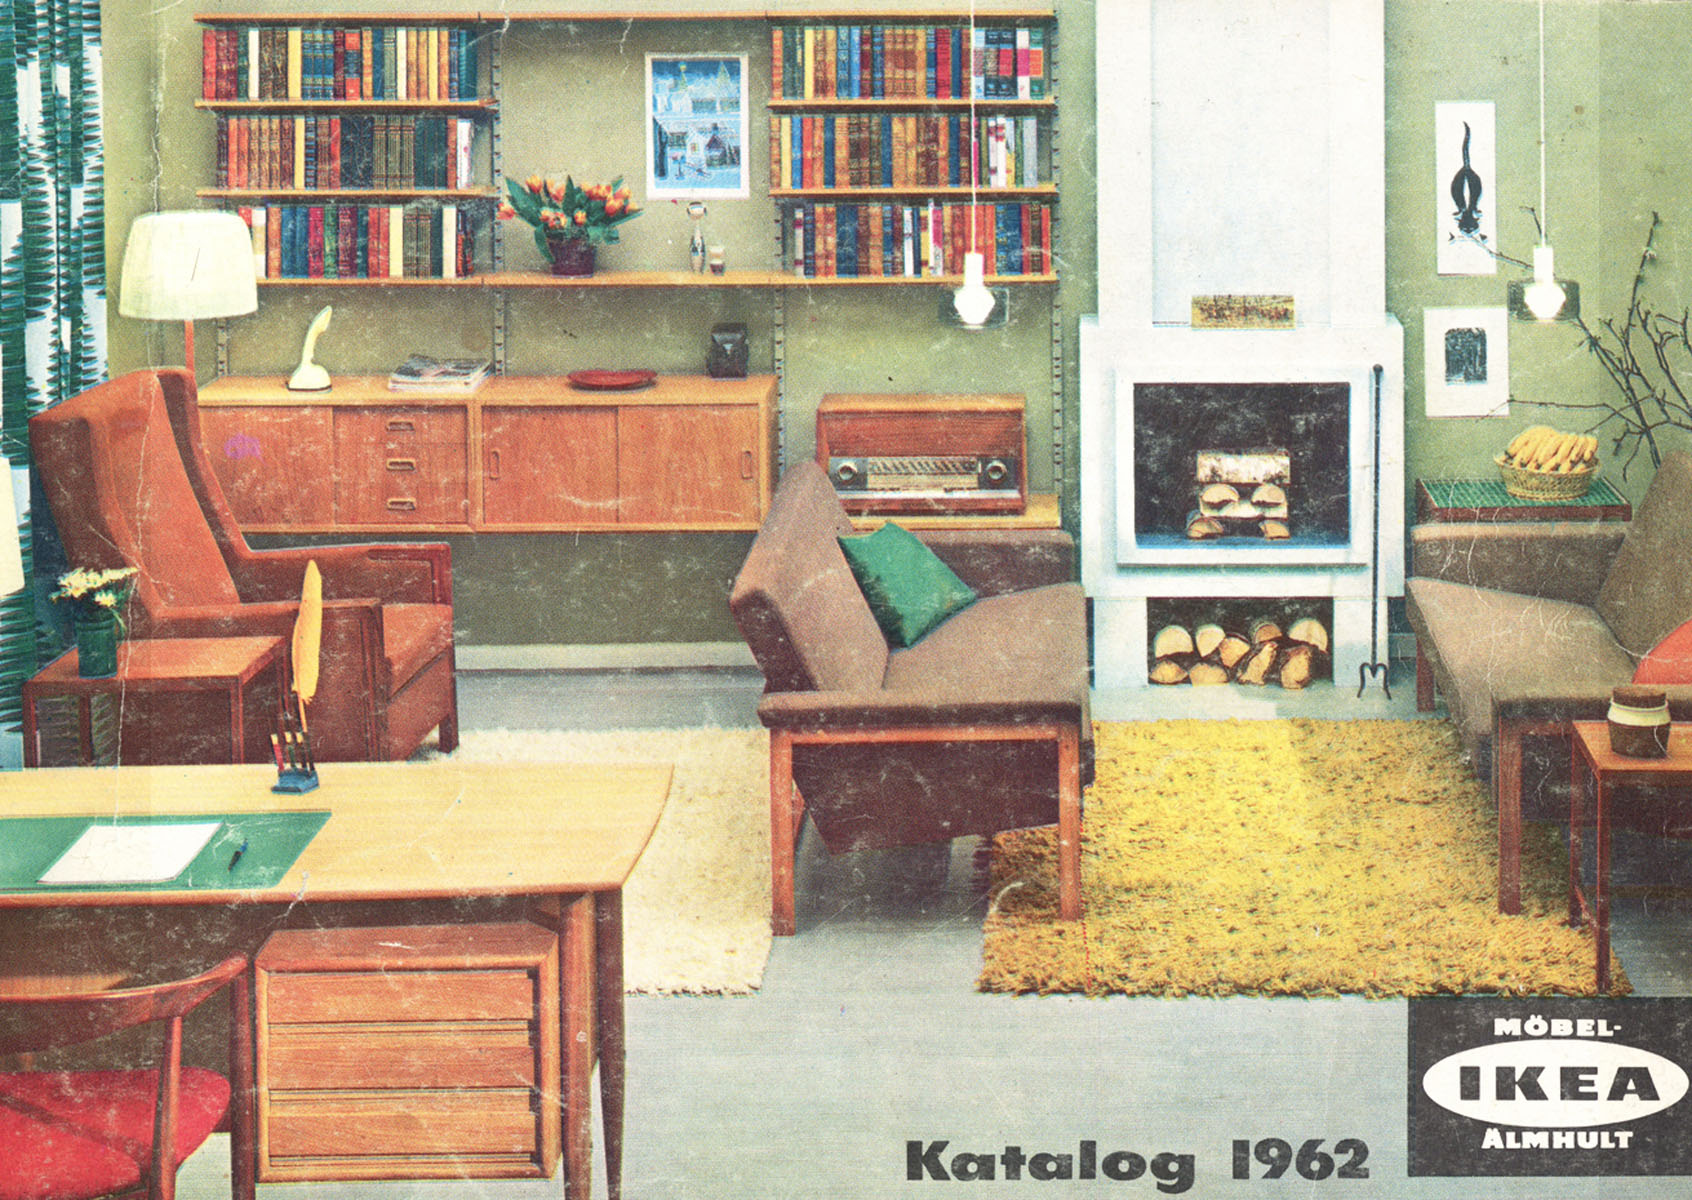 Fifty Years of Ikea Catalogues Show the Evolution of the